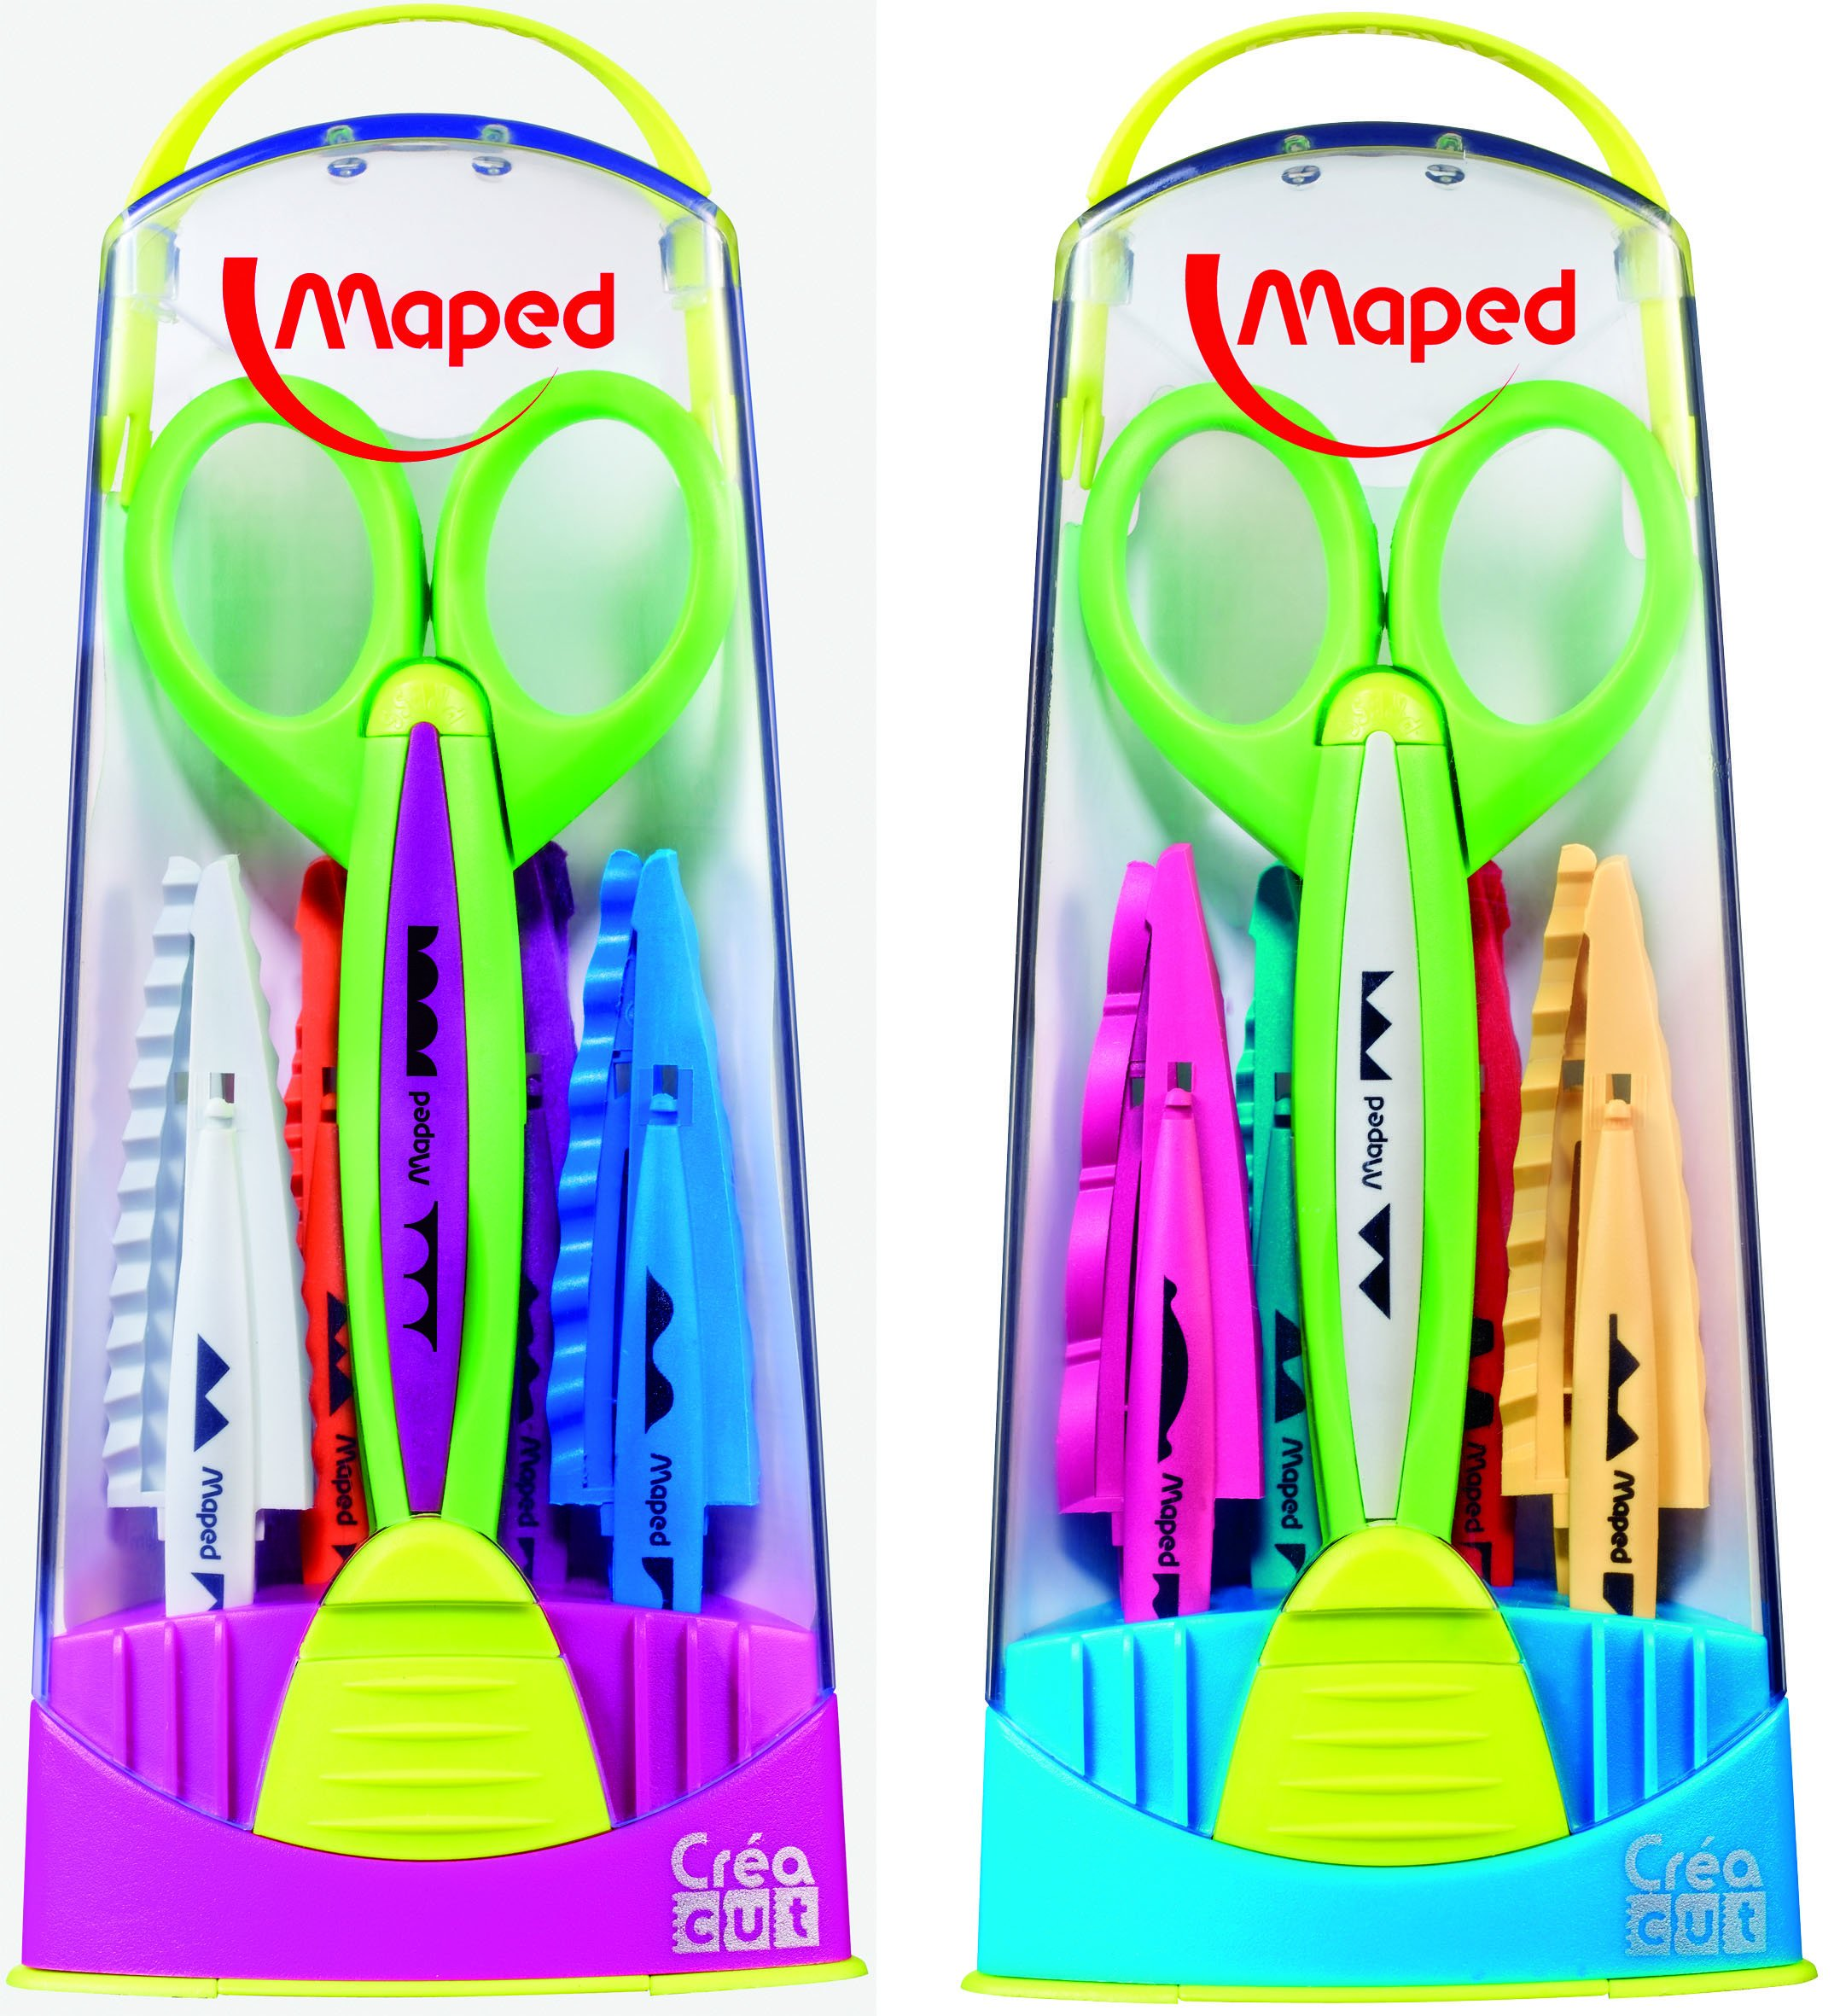 Tijera Maped Quick-Change Craft Scissors with 5 Blades